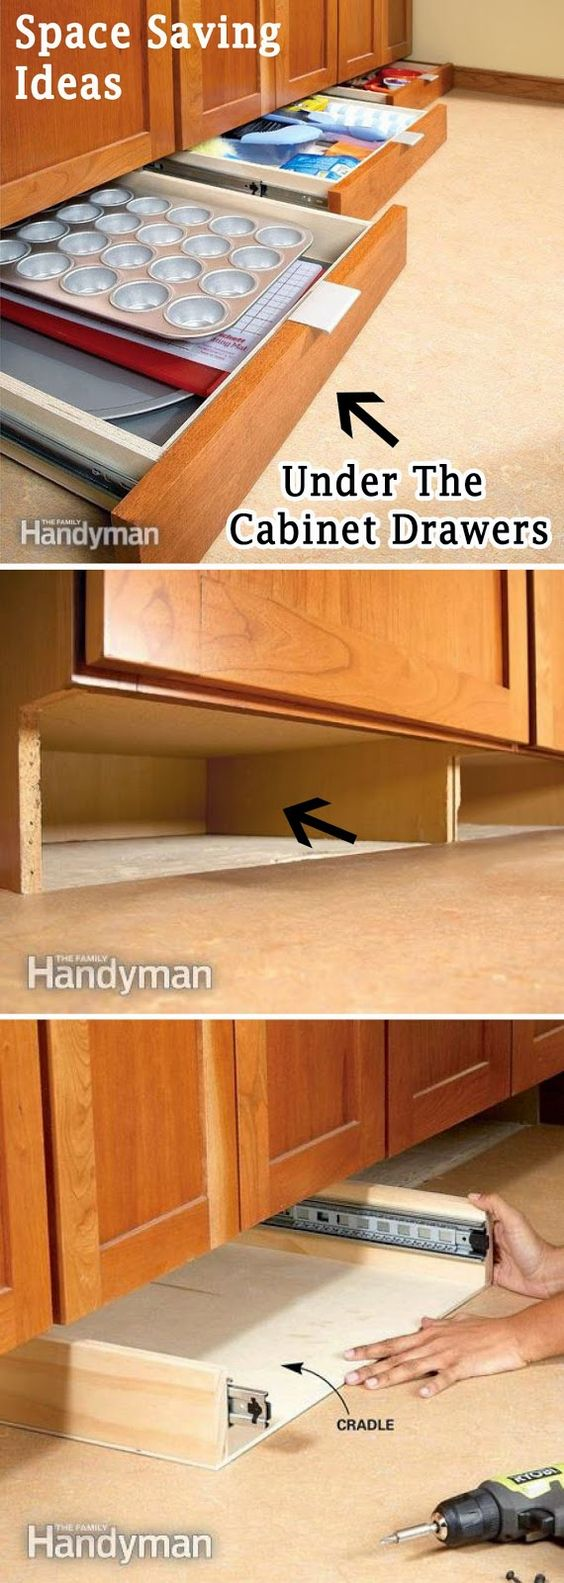 Get More Space in the Kitchen with Under Cabinet Drawers.